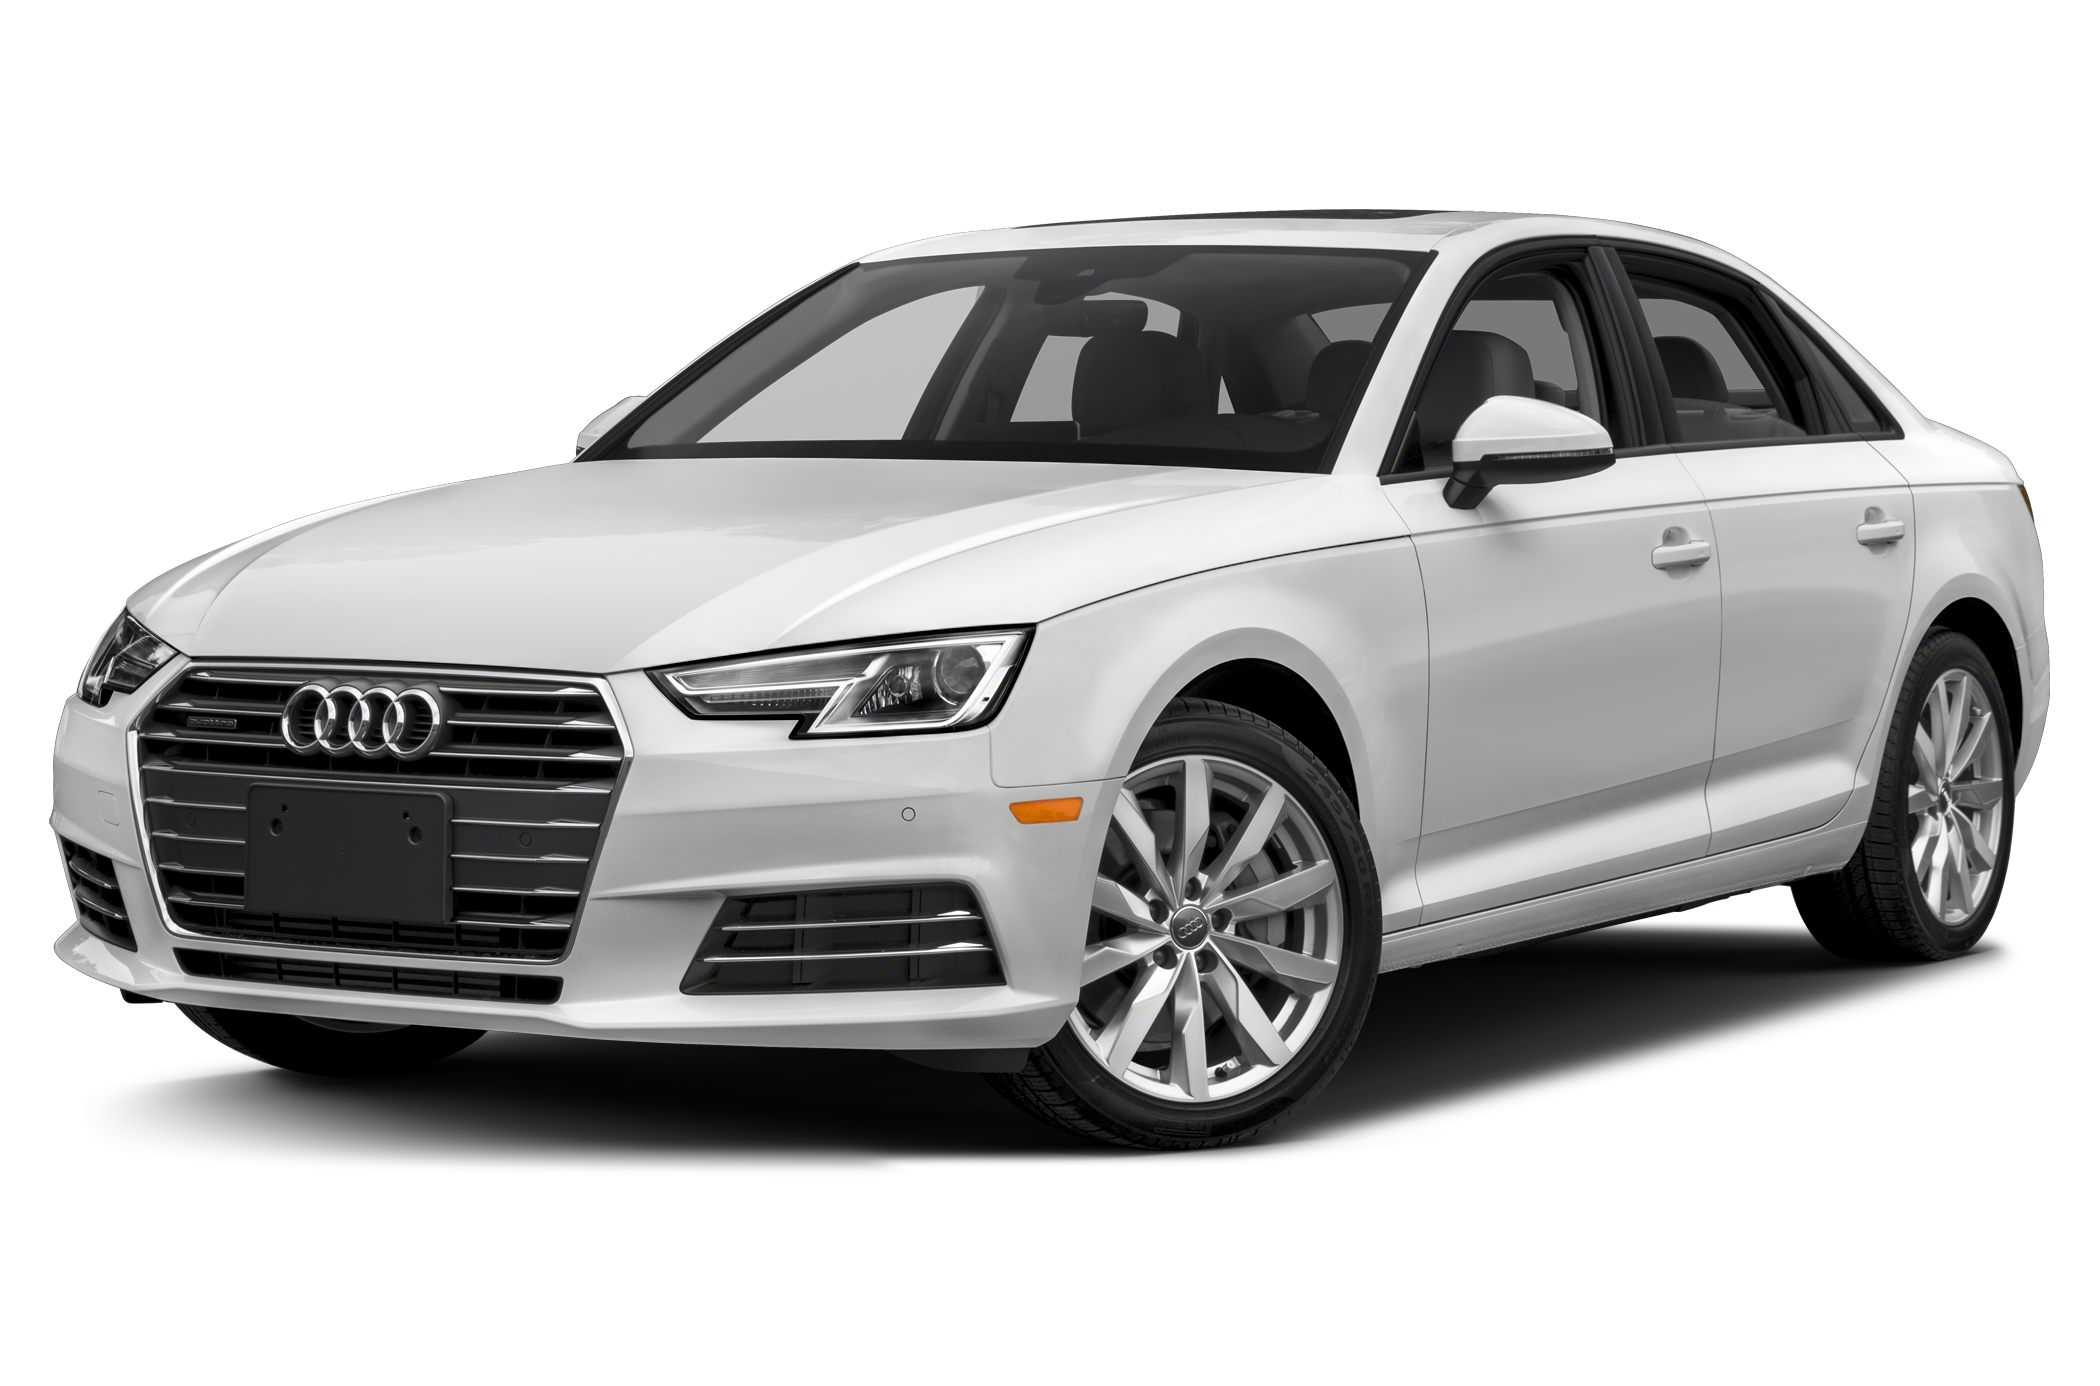 2100x1386 > Audi A4 Wallpapers